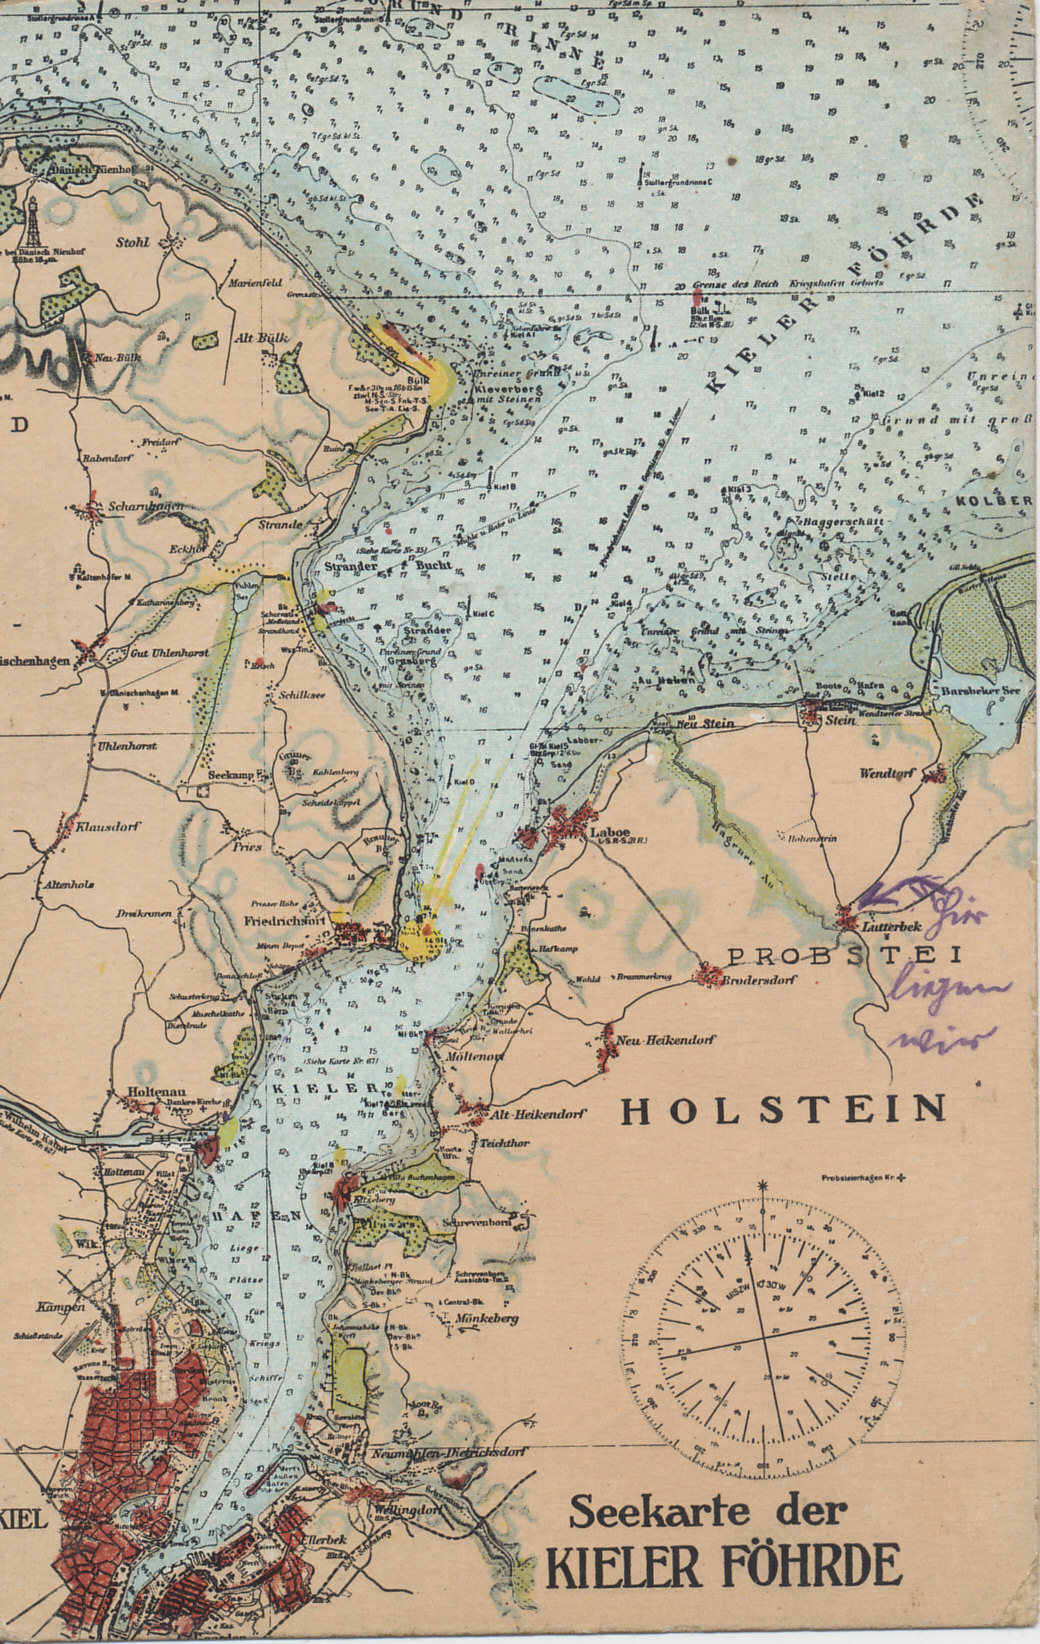 Nautical chart of the Kiel Fjord on the Baltic Sea, leading to Kiel, one of the home ports of the German Baltic Fleet. ? Just north of Kiel is the entrance to the Kaiser Wilhelm Canal, which crosses the Jutland Peninsula in the state of Schleswig-Holstein, and carries traffic to the mouth of the River Elbe on the North Sea.